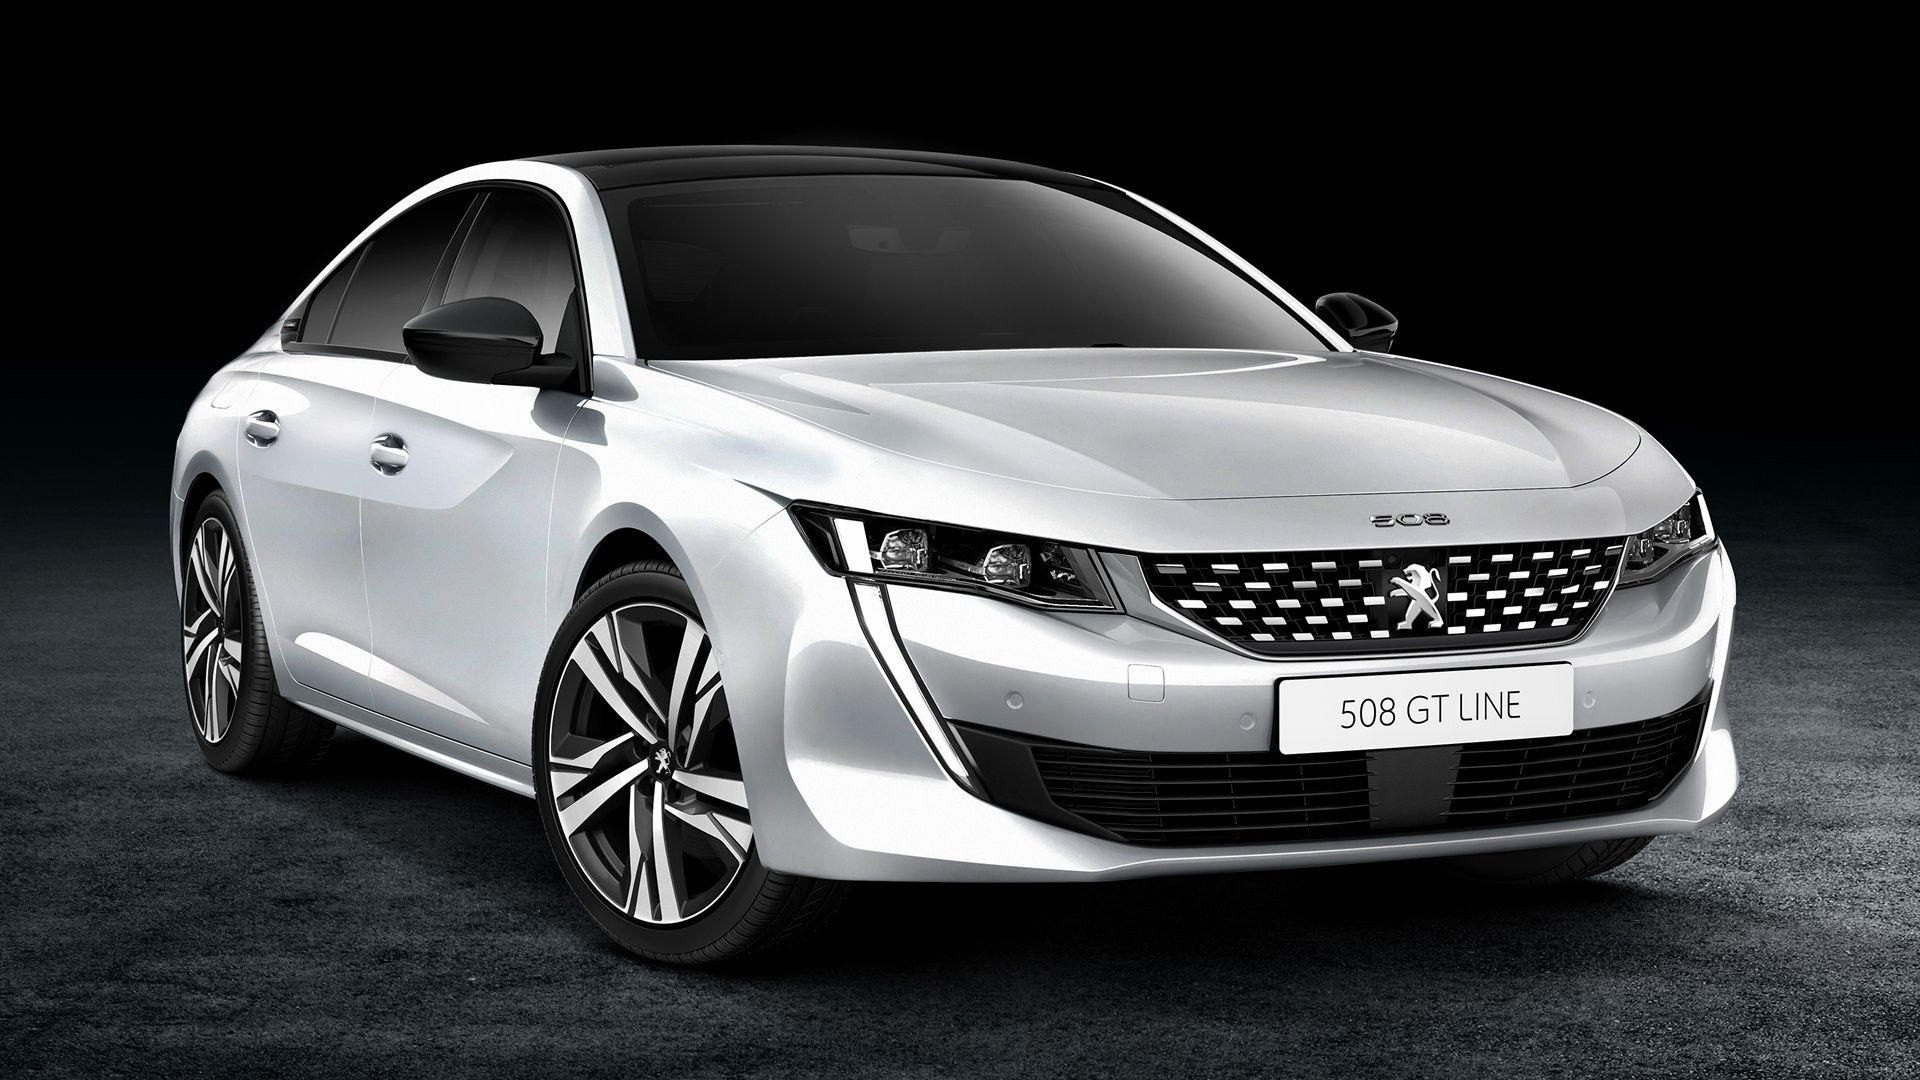 2018 Peugeot 508 GT Line Full HD Wallpapers and Backgrounds Image